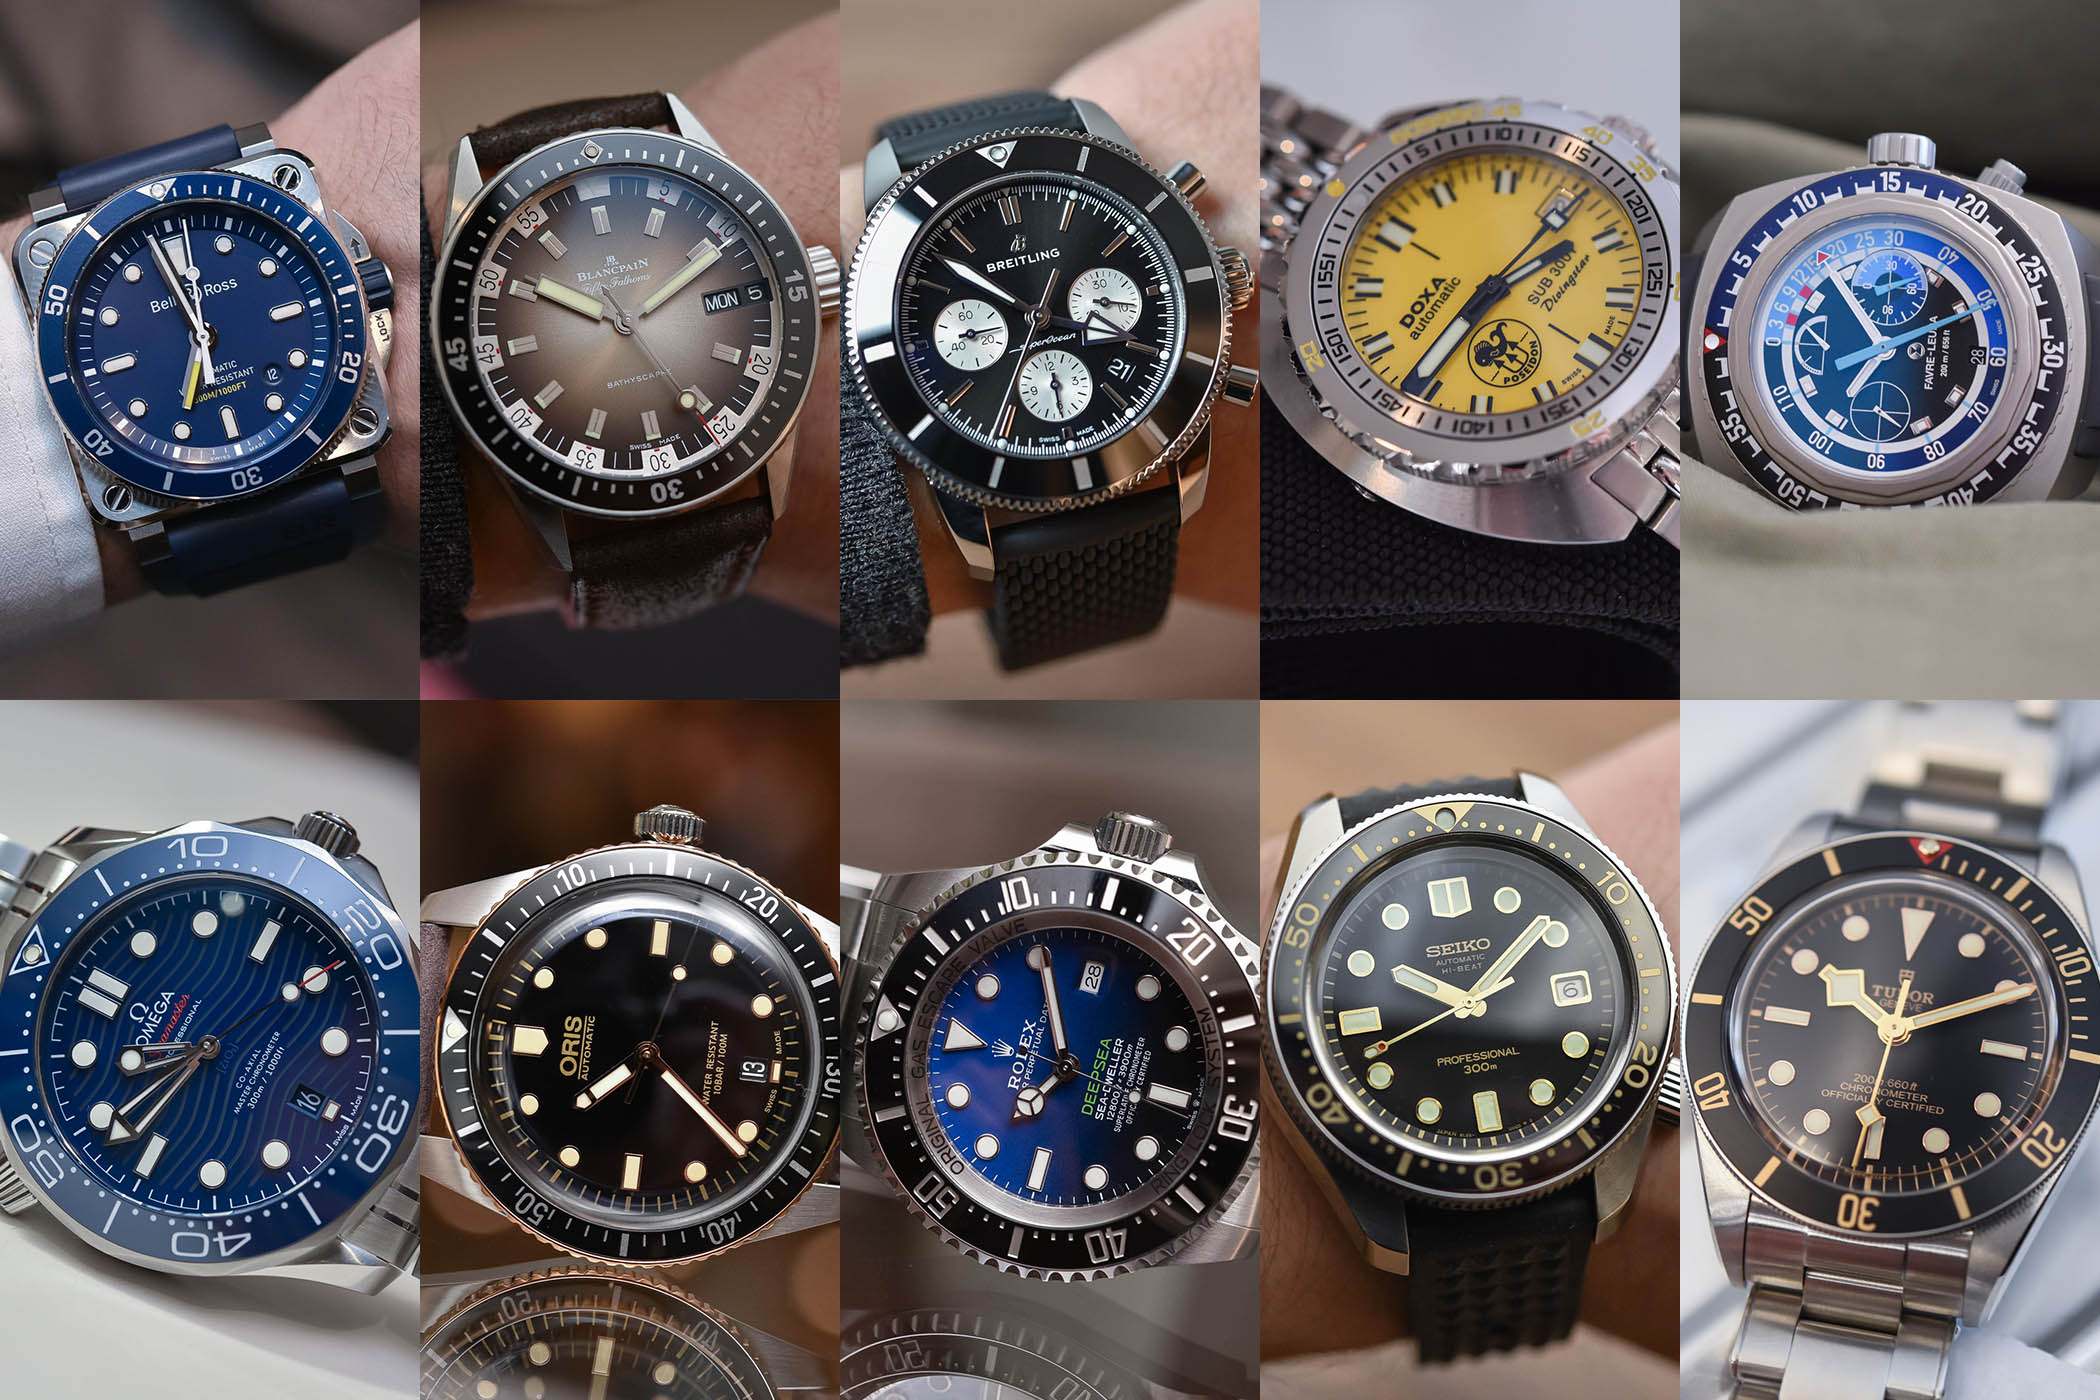 finder of watch specials shop online providing products watches iconic switzerland